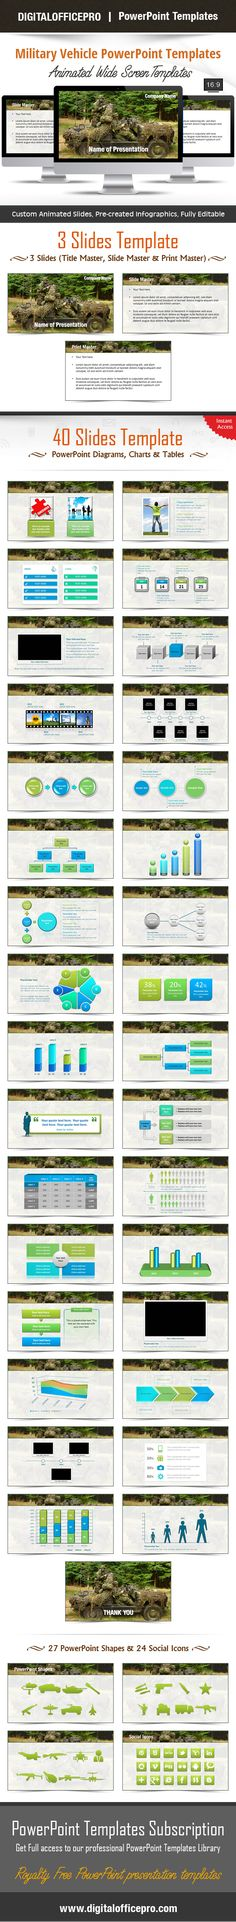 Graphs and charts httppoweredtemplatepowerpoint diagrams graphs and charts httppoweredtemplatepowerpoint diagrams charts ppt graph charts004900indexml powerpoint charts and diagrams pinterest toneelgroepblik Gallery